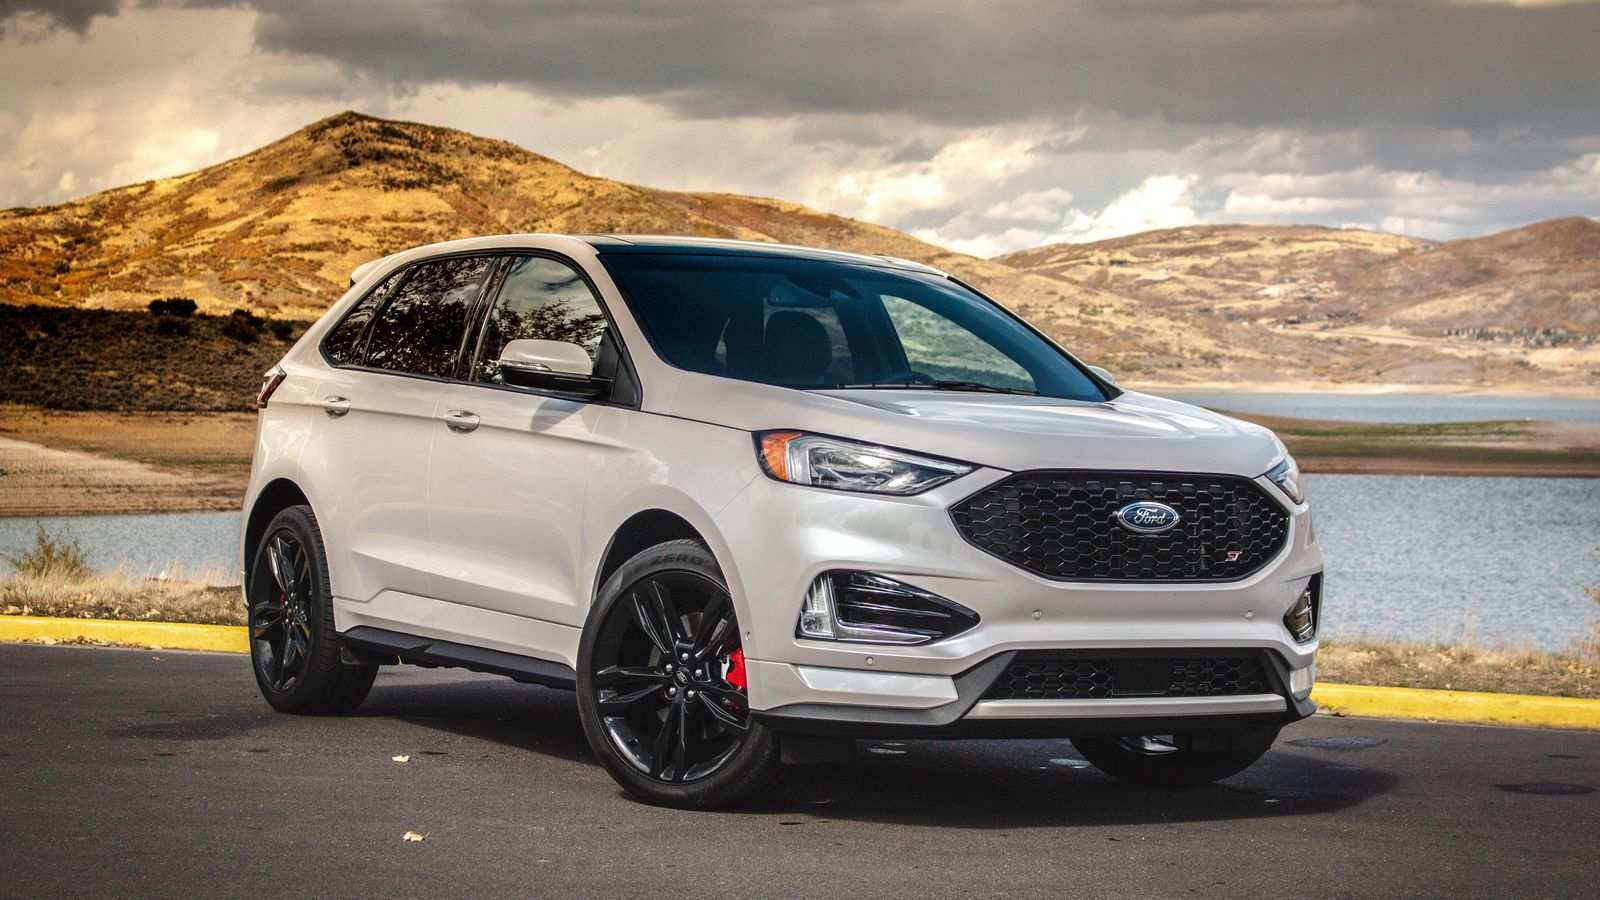 44 The 2019 Ford Edge Engine